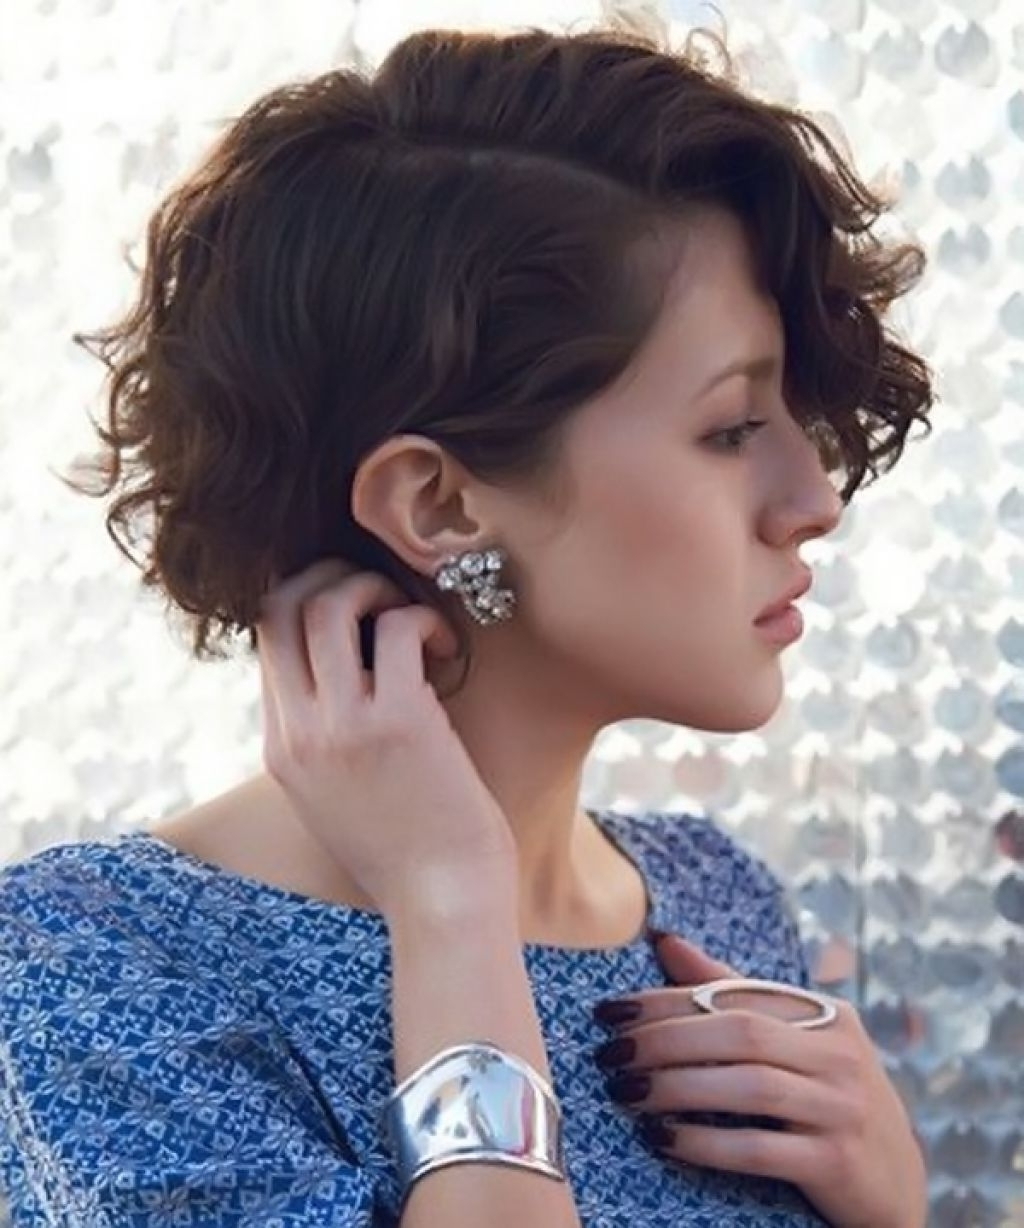 Hairstyles For Heart Shaped Faces Curly Hair This Style Is Curly In Most Recently Long Pixie Hairstyles For Curly Hair (View 4 of 15)